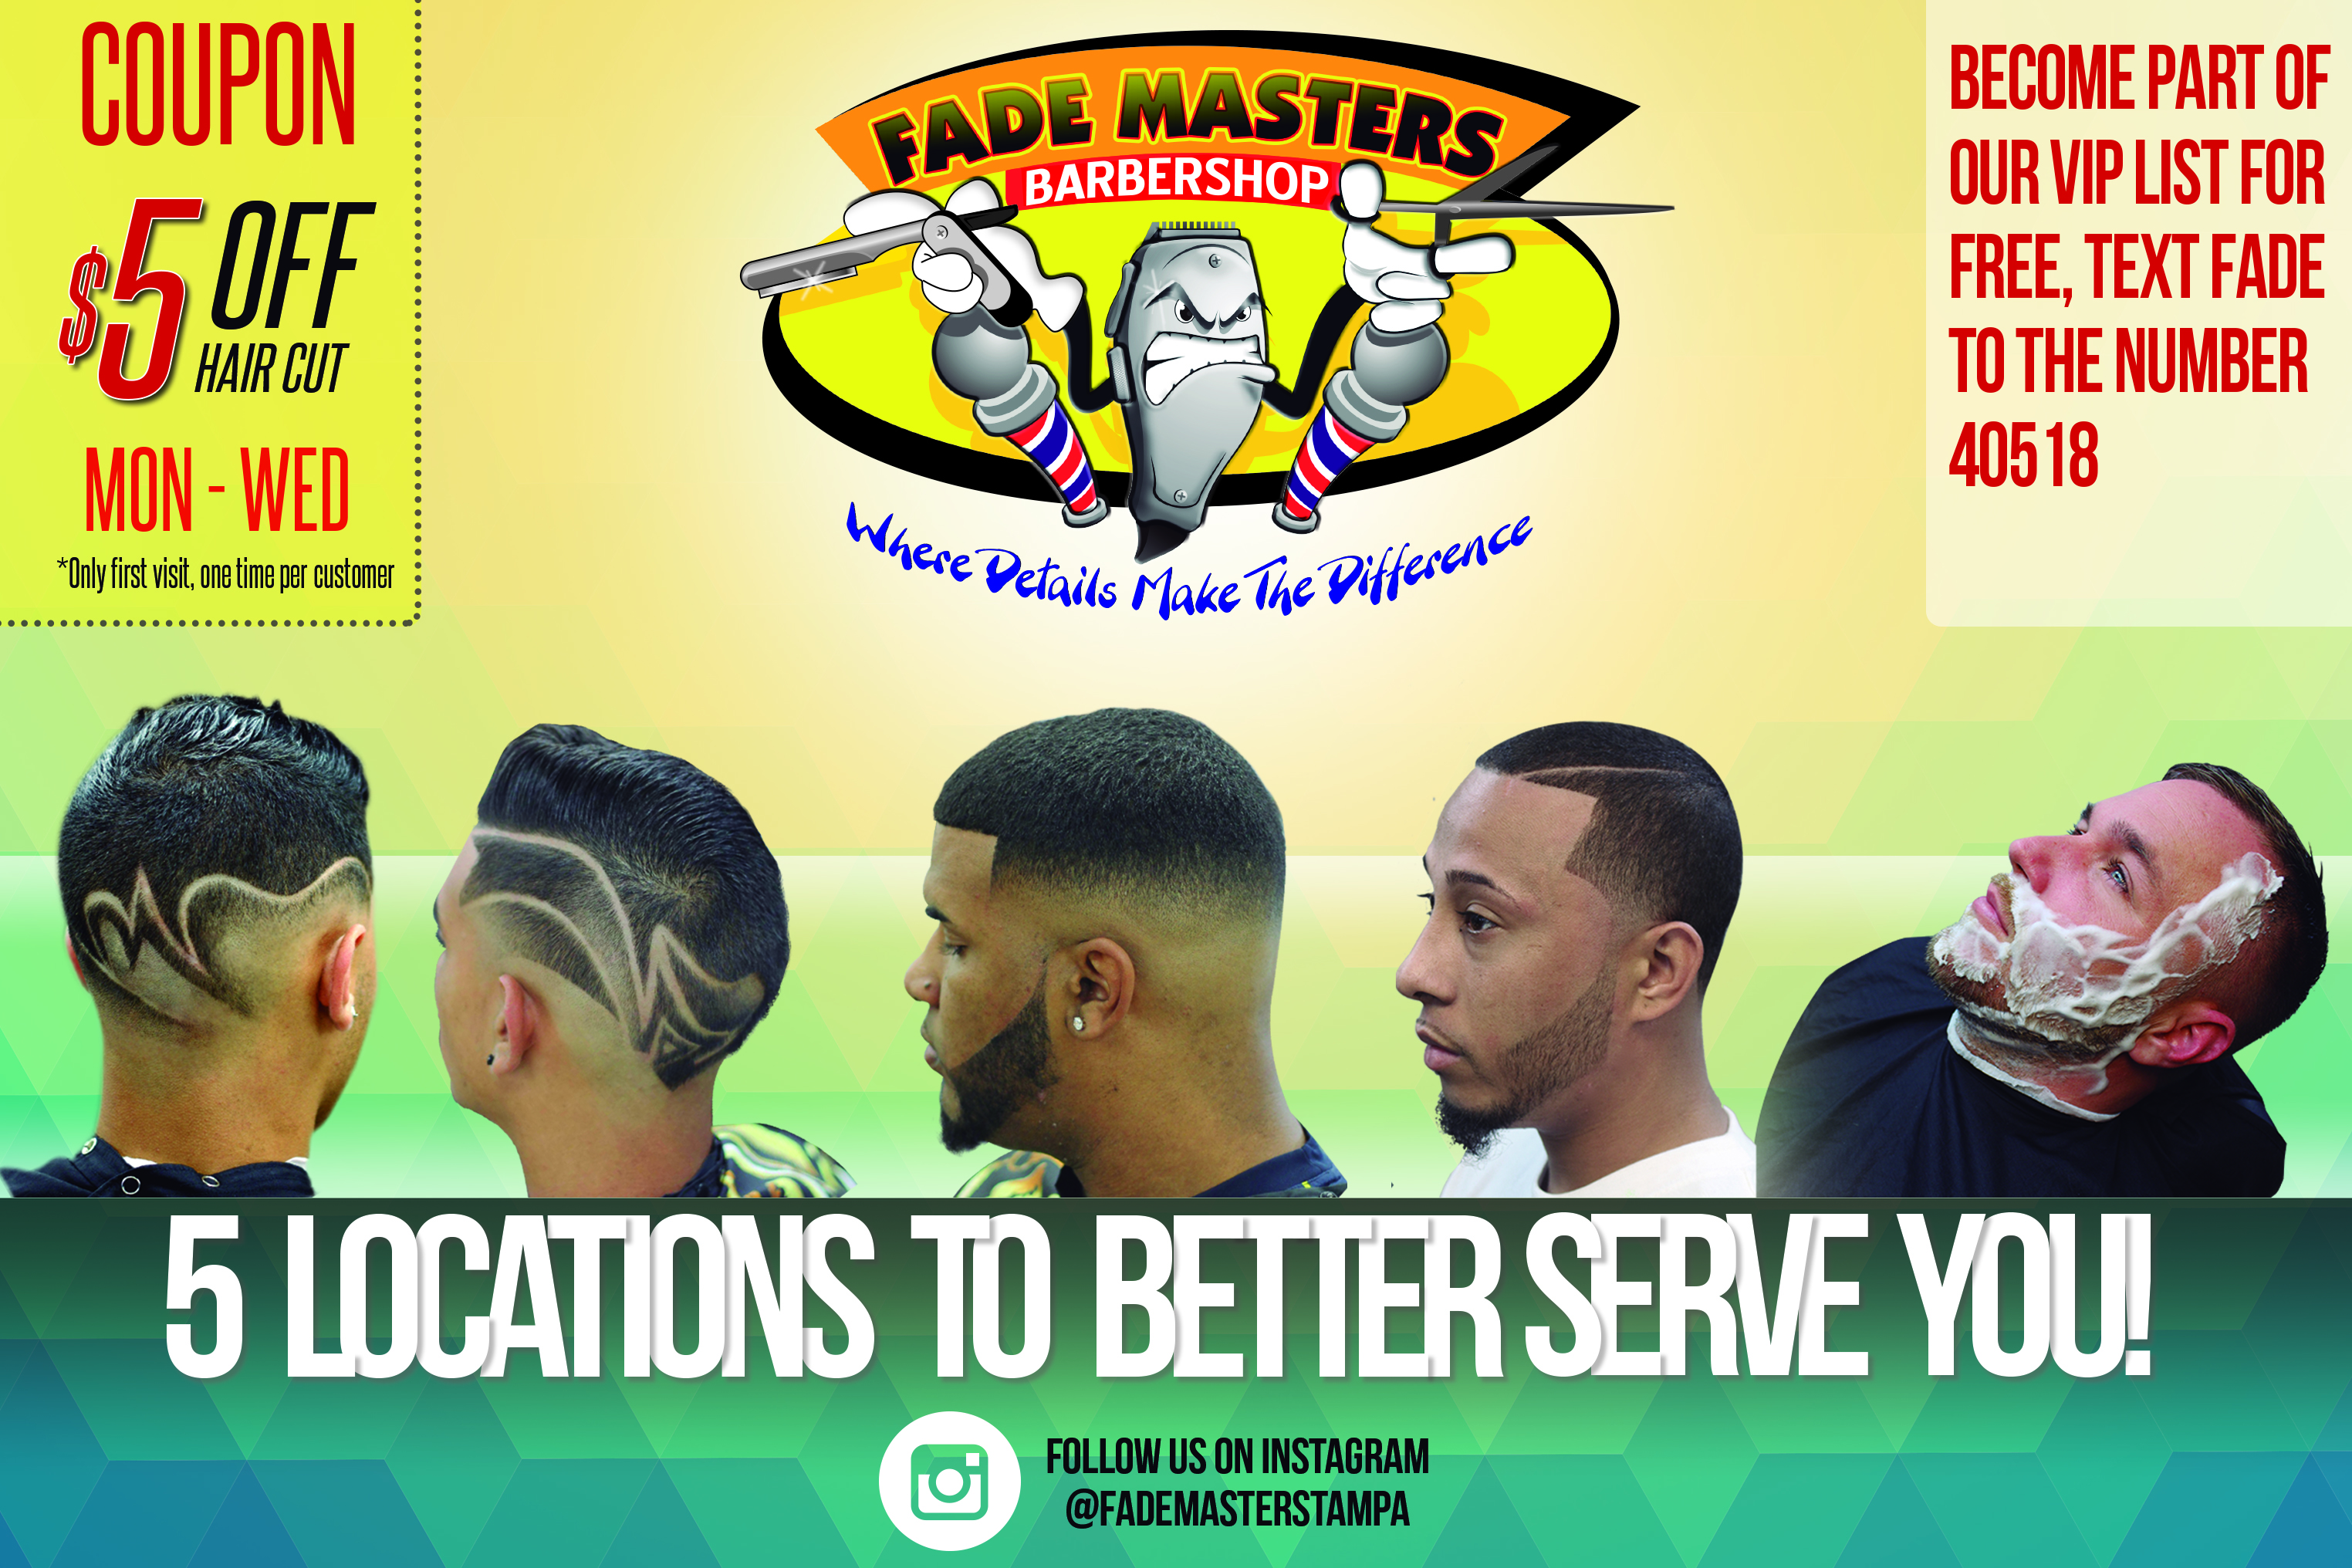 Get $5 OFF your first haircut at Fade Masters Barber Shop